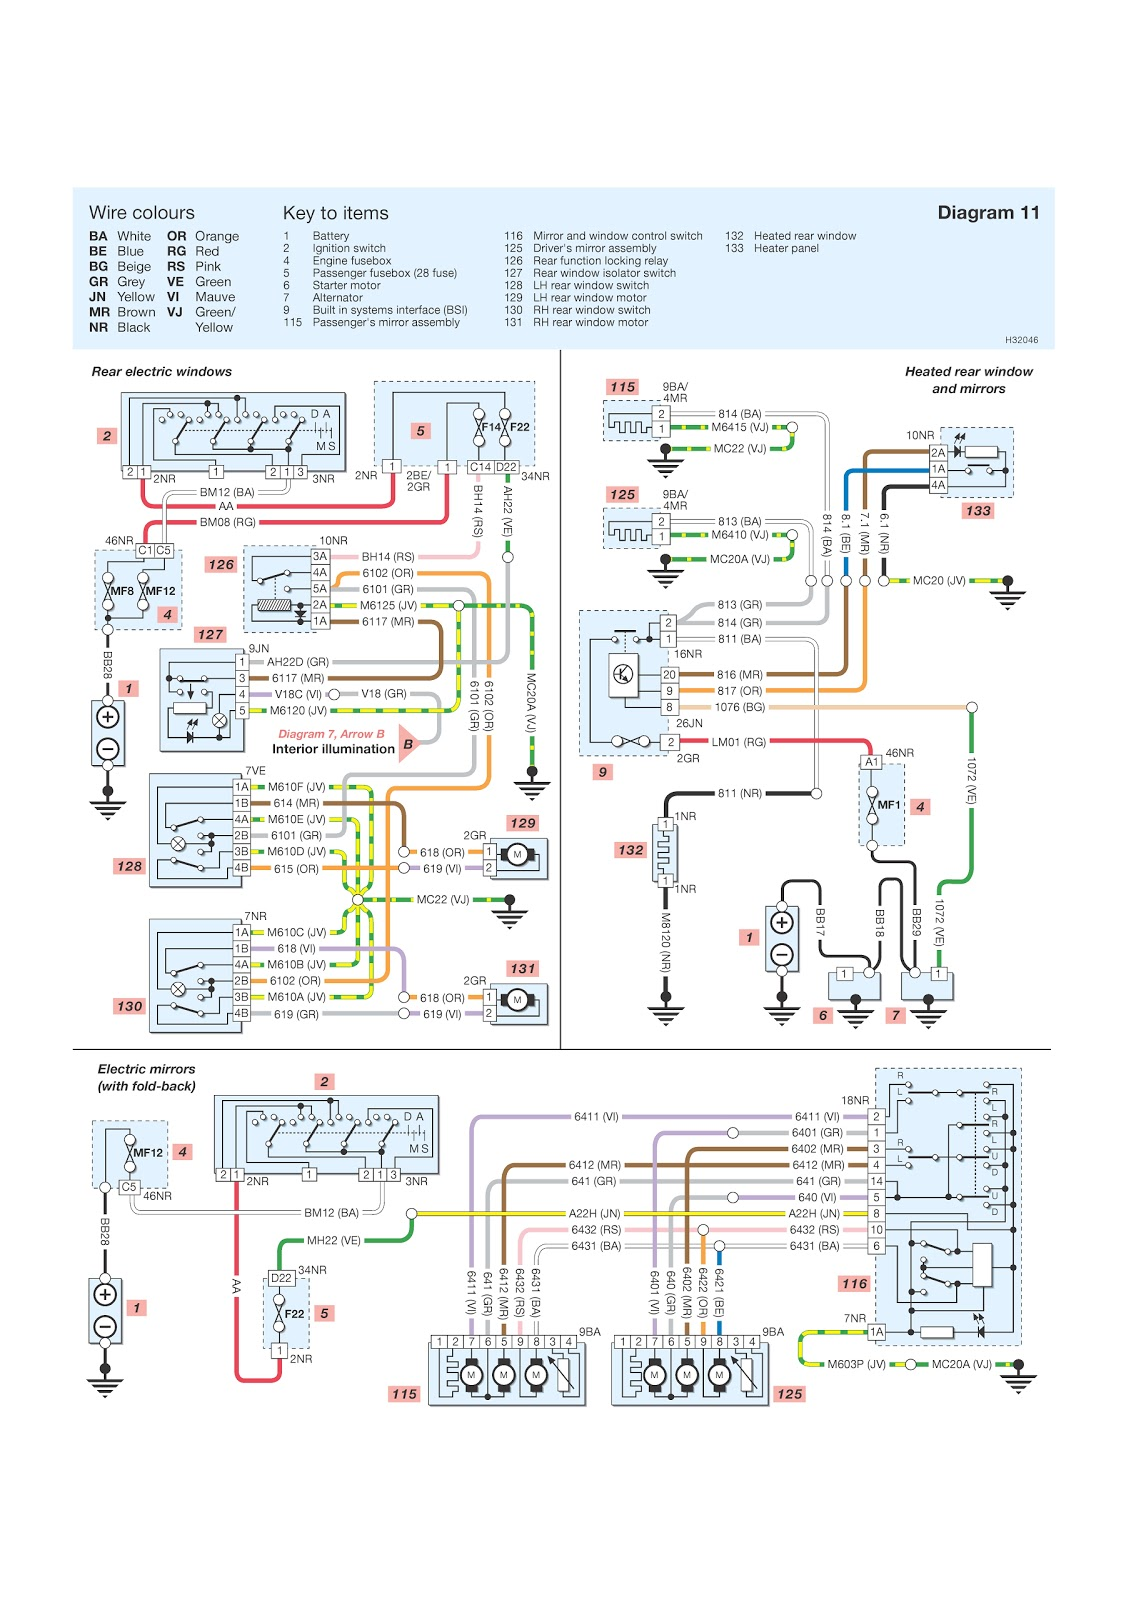 Peugeot 206 wiring diagram stereo wiring diagram modern autodata peugeot ideas wiring diagram ideas blogitia com honda civic diagram peugeot 206 wiring diagram stereo asfbconference2016 Image collections